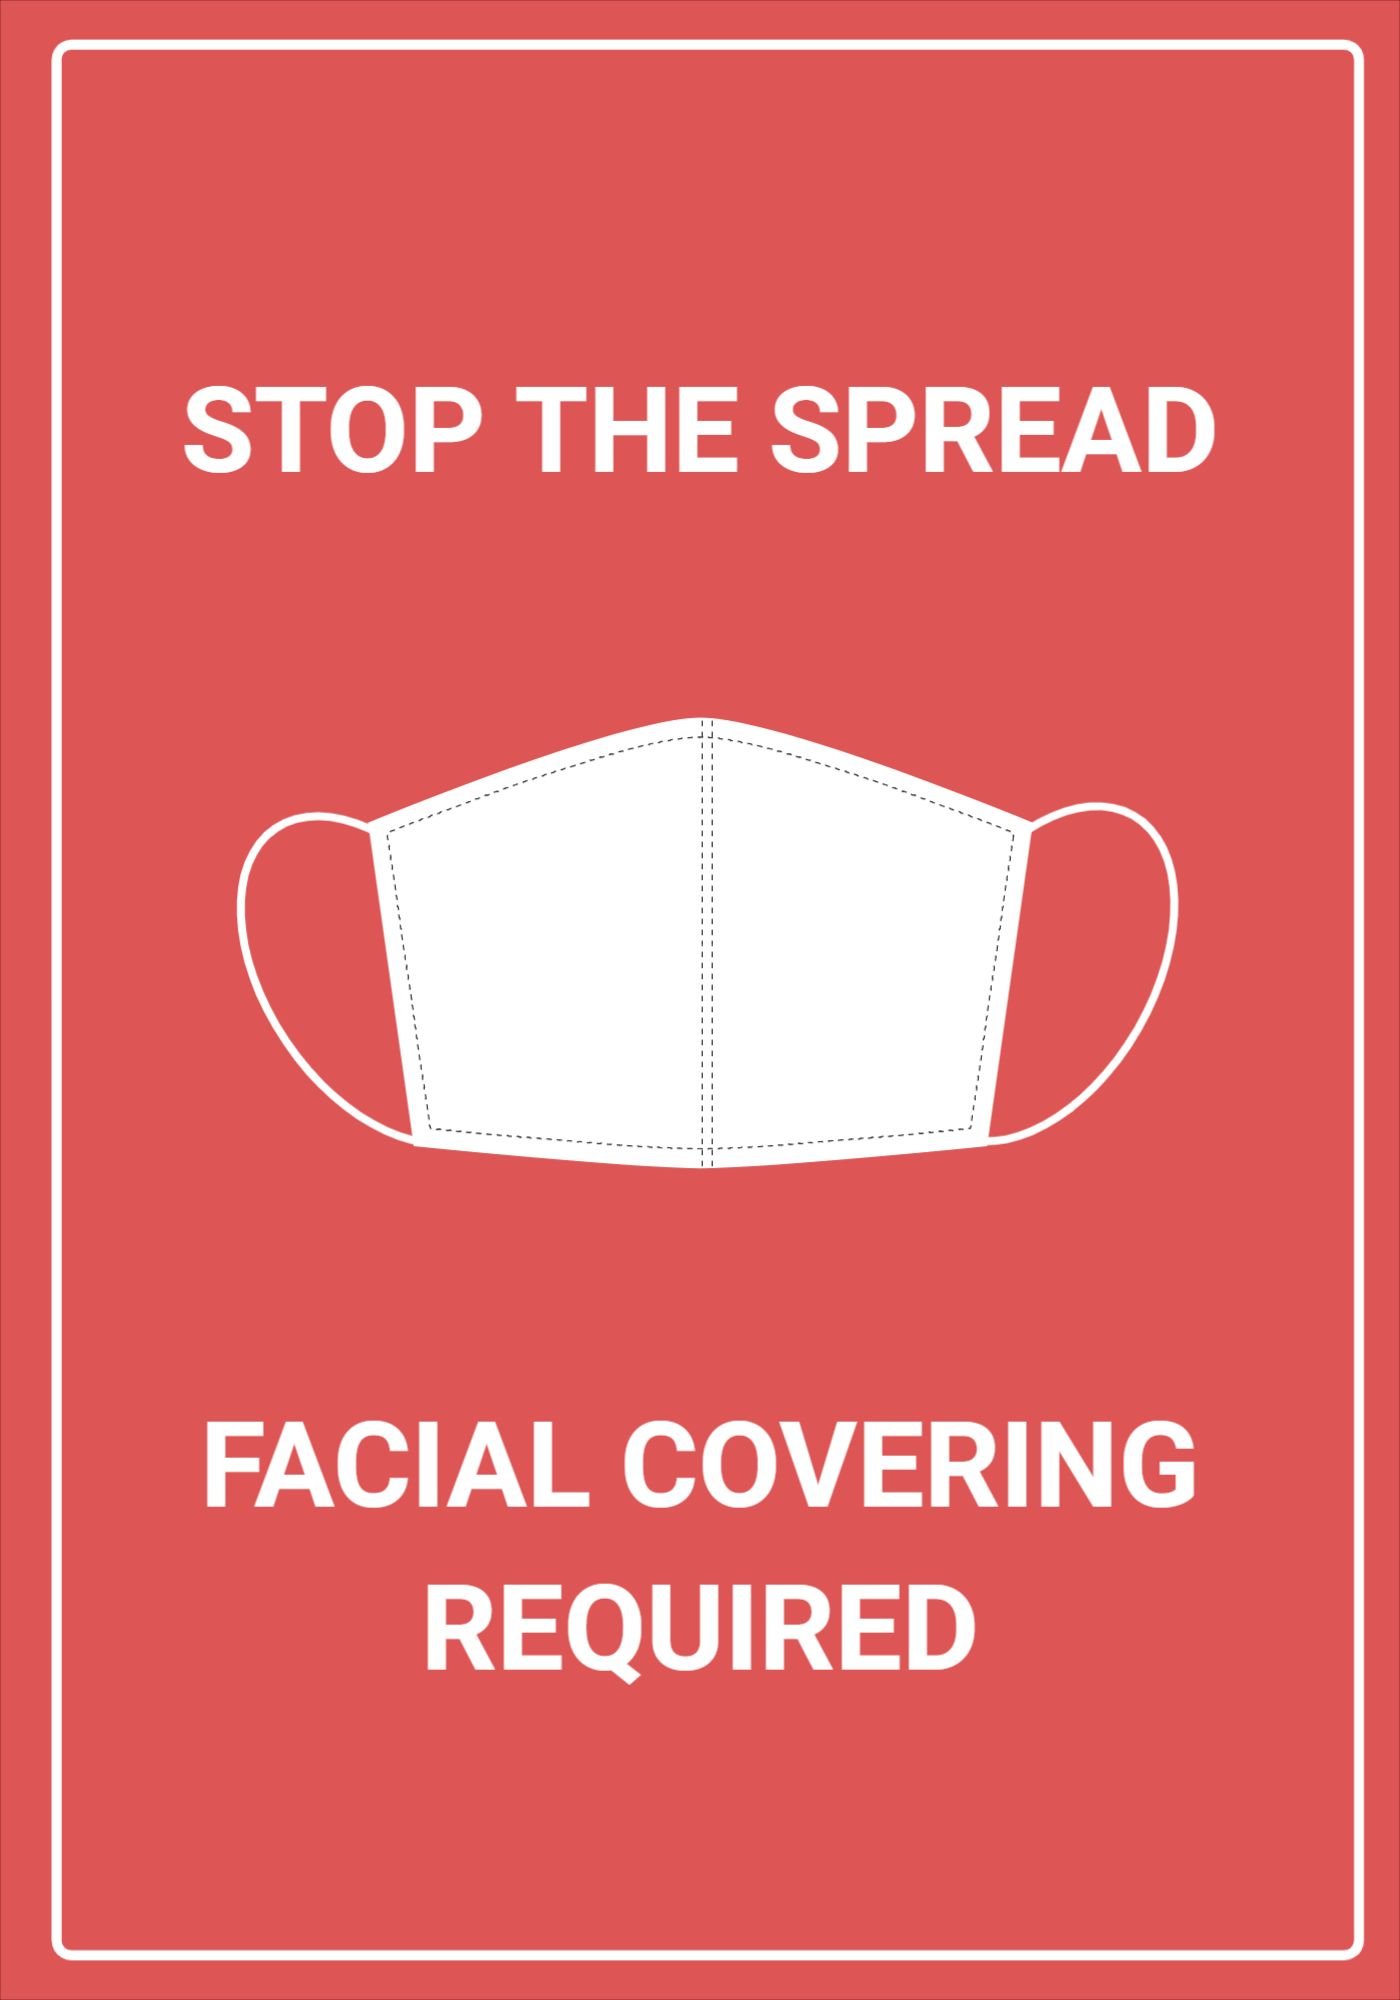 Poster Template for Stop the Spread Covid